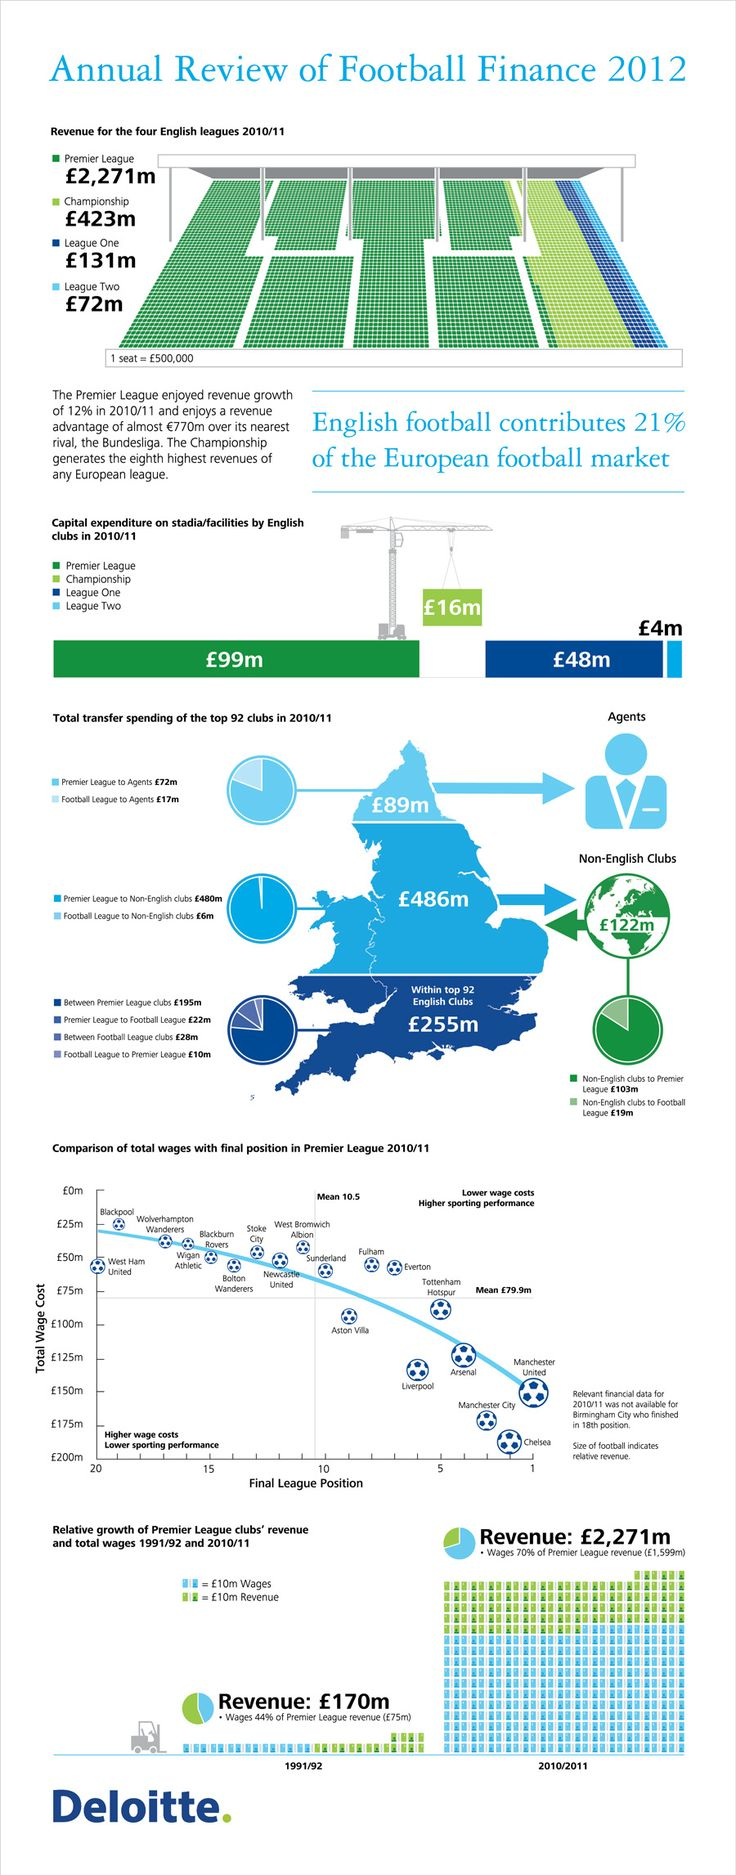 Annual-Review-Of-Football-Finance-2012-infographic Find always more on http://infographicsmania.com